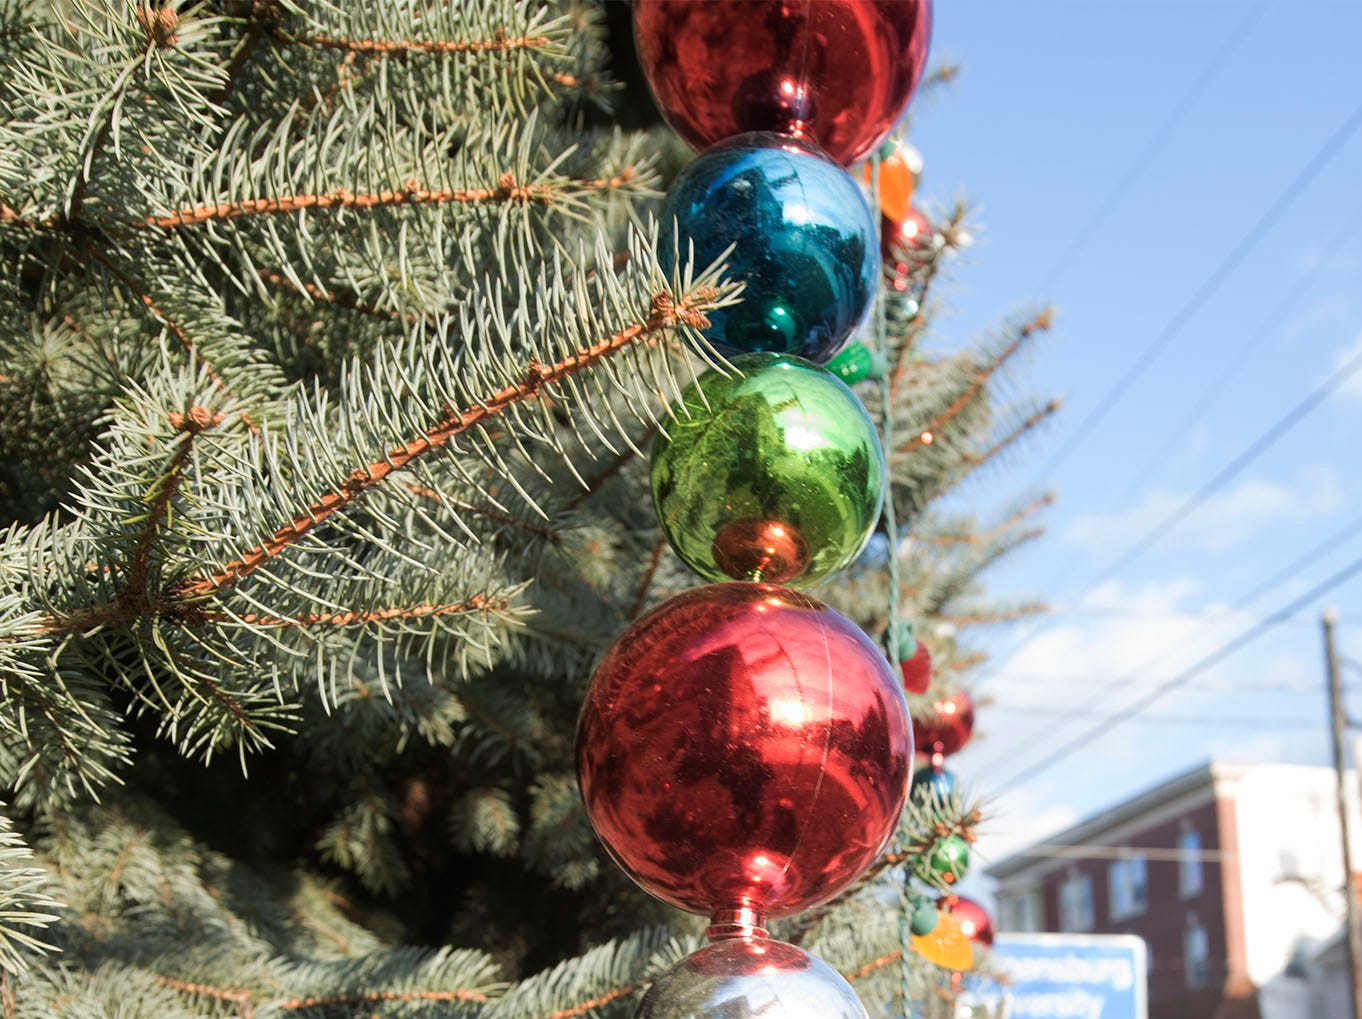 The Shippensburg Christmas tree is at the corner of Prince and East King streets.